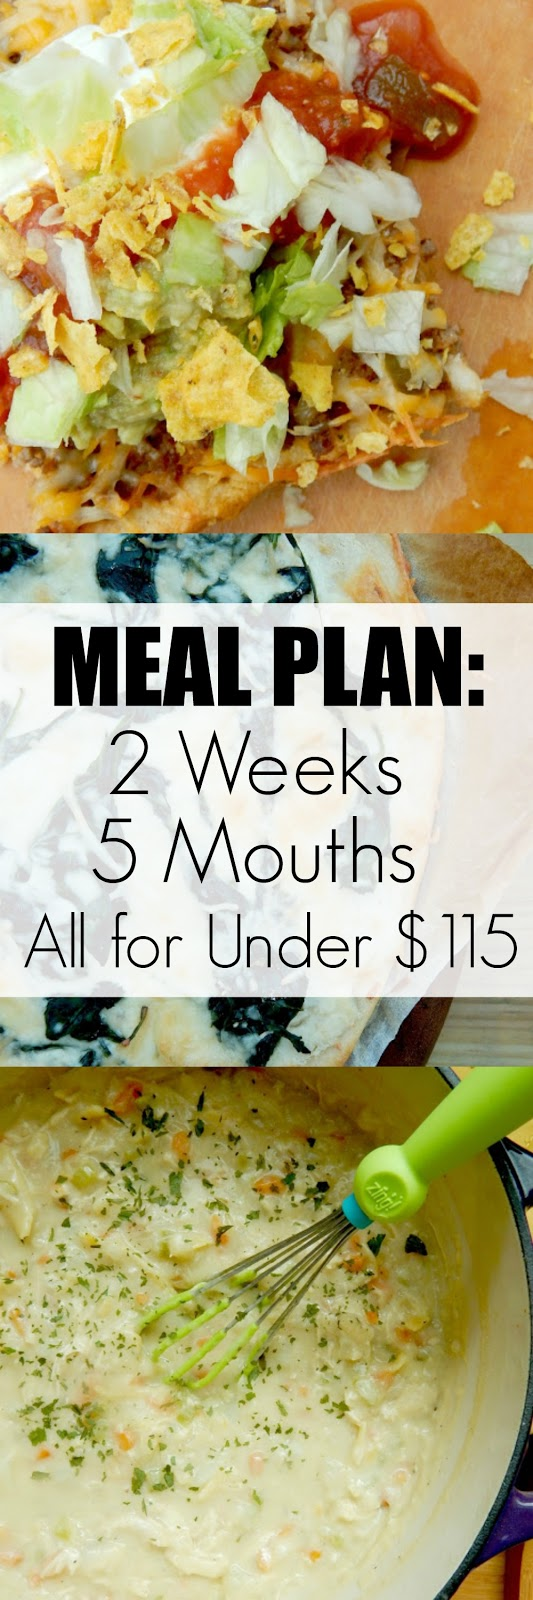 Meal Plan: 2 Weeks, 5 Mouths, All for Under $115...a superb plan for a hungry family!  Plenty of leftovers for lunches and extras that will stock your fridge and pantry. (sweetandsavoryfood.com)